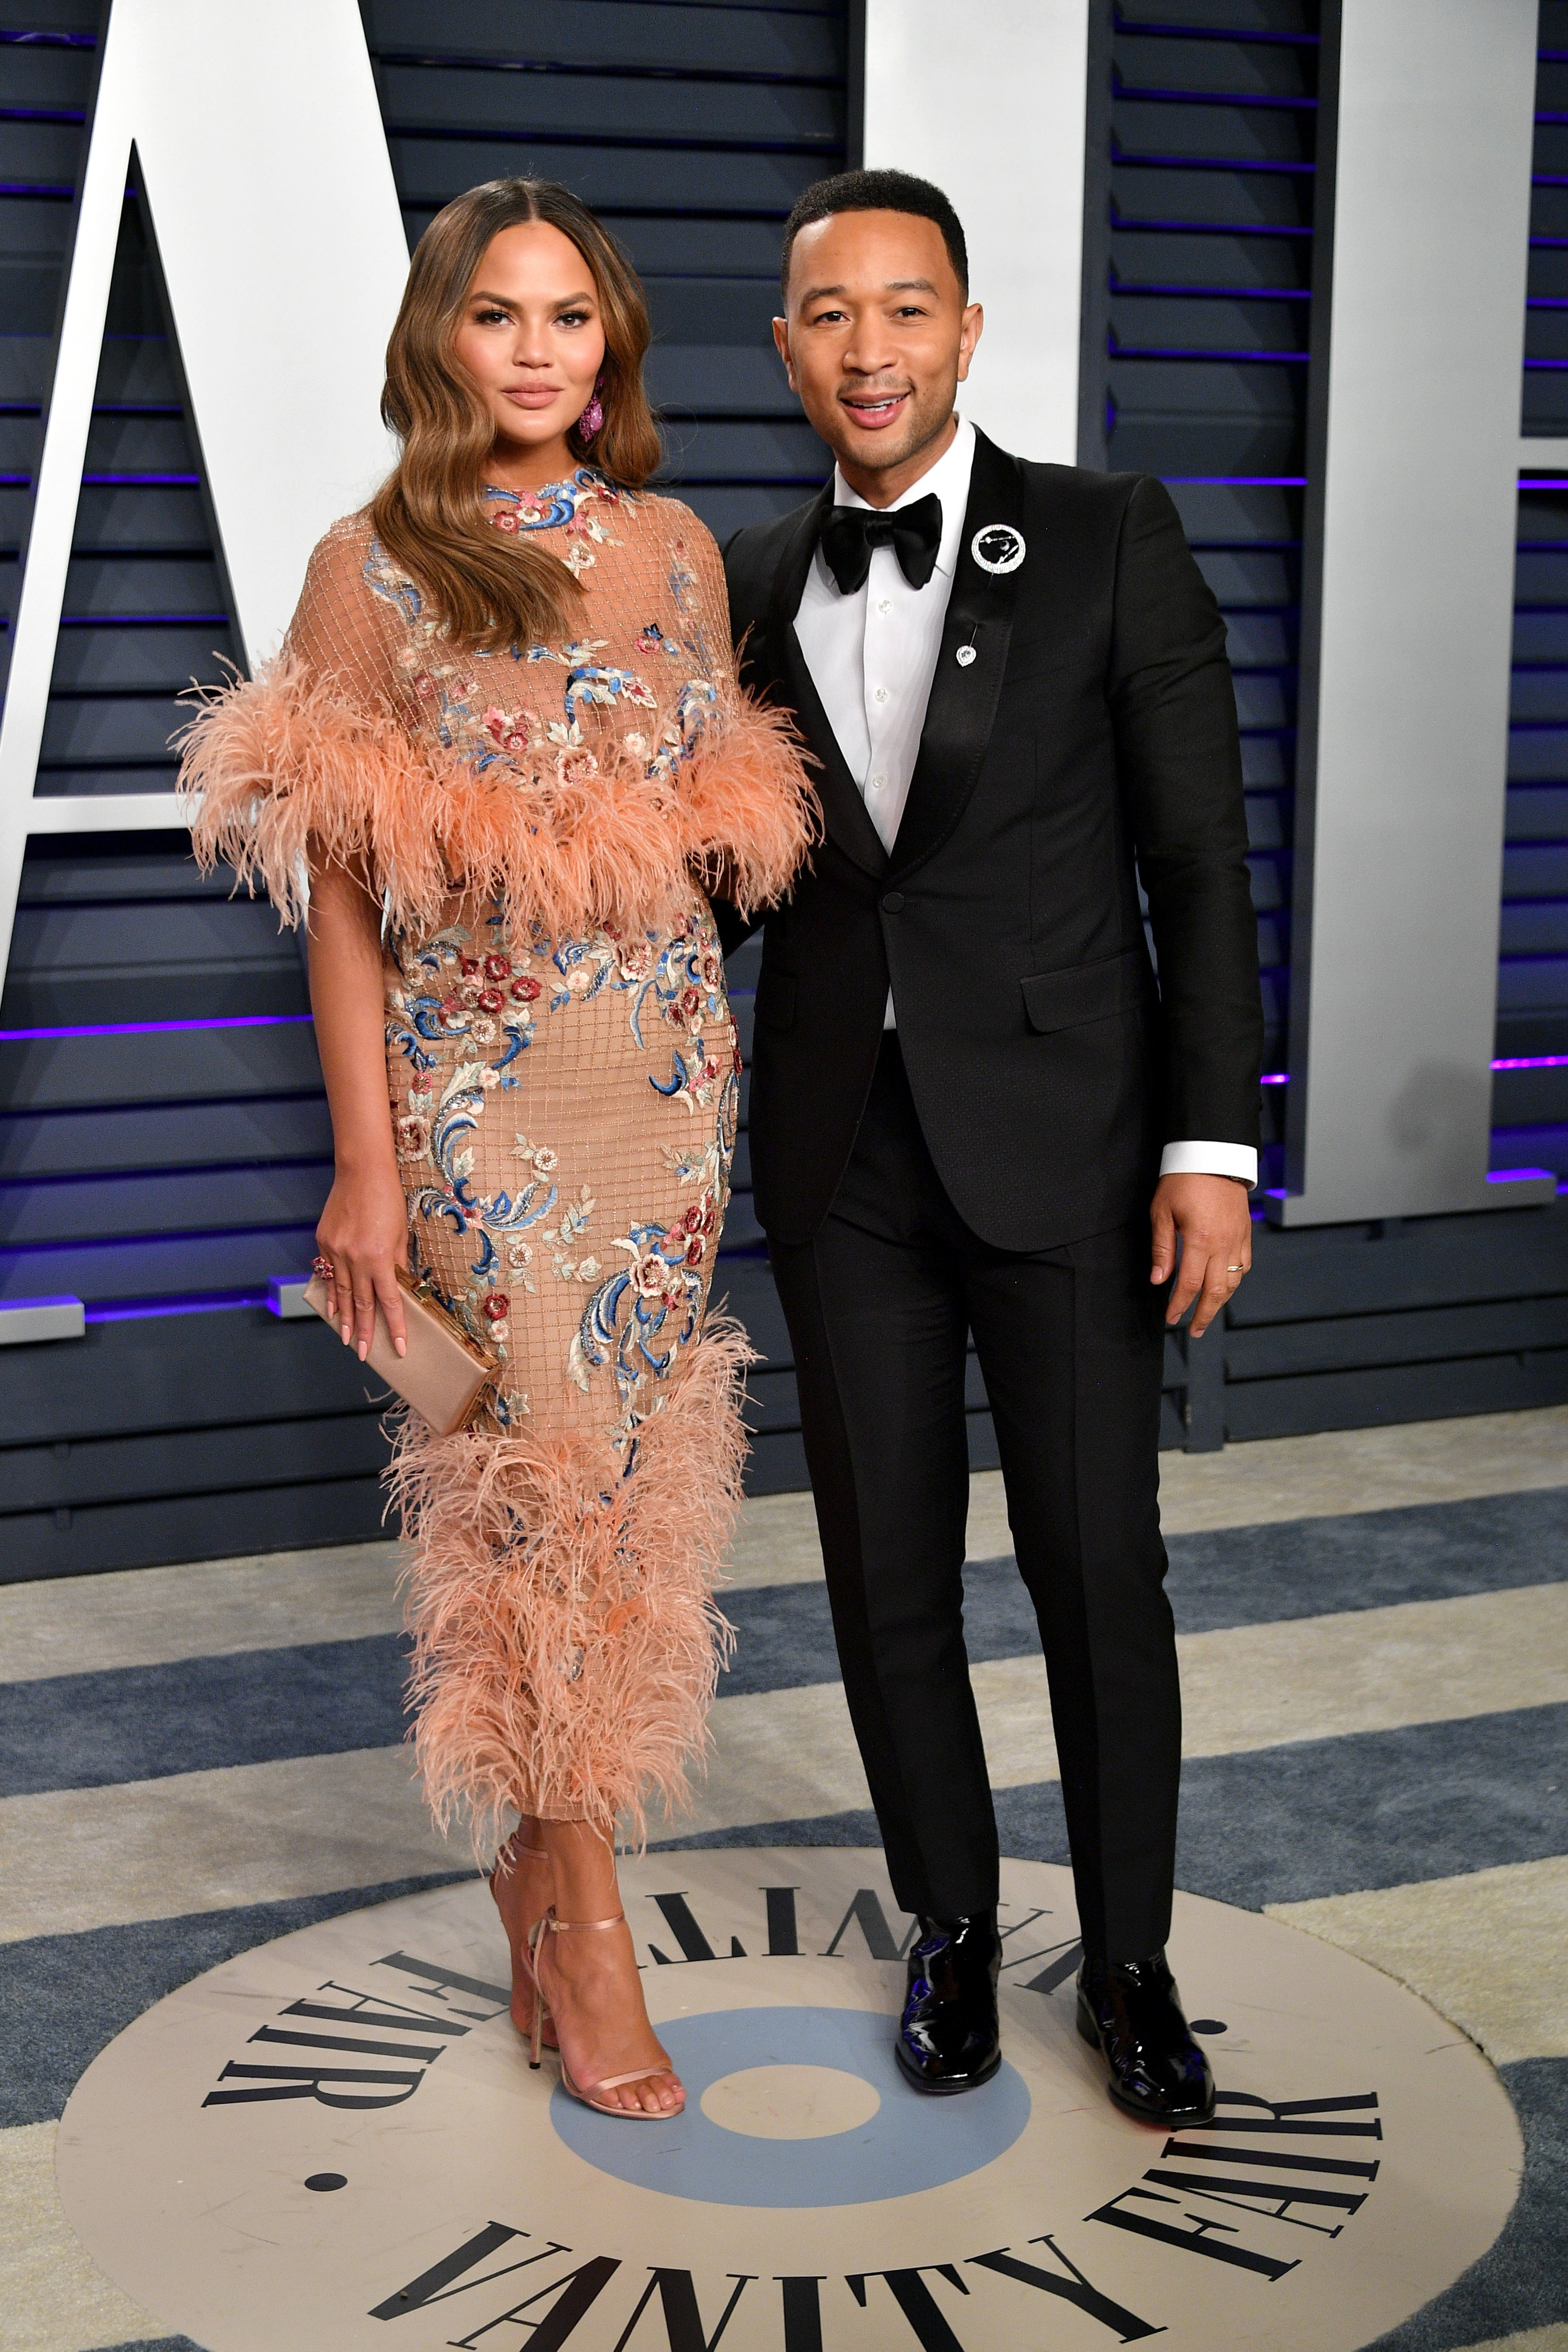 Chrissy Teigen and John Legend attend the 2019 Vanity Fair Oscar Party on February 24, 2019, in Beverly Hills, California. | Source: Getty Images.